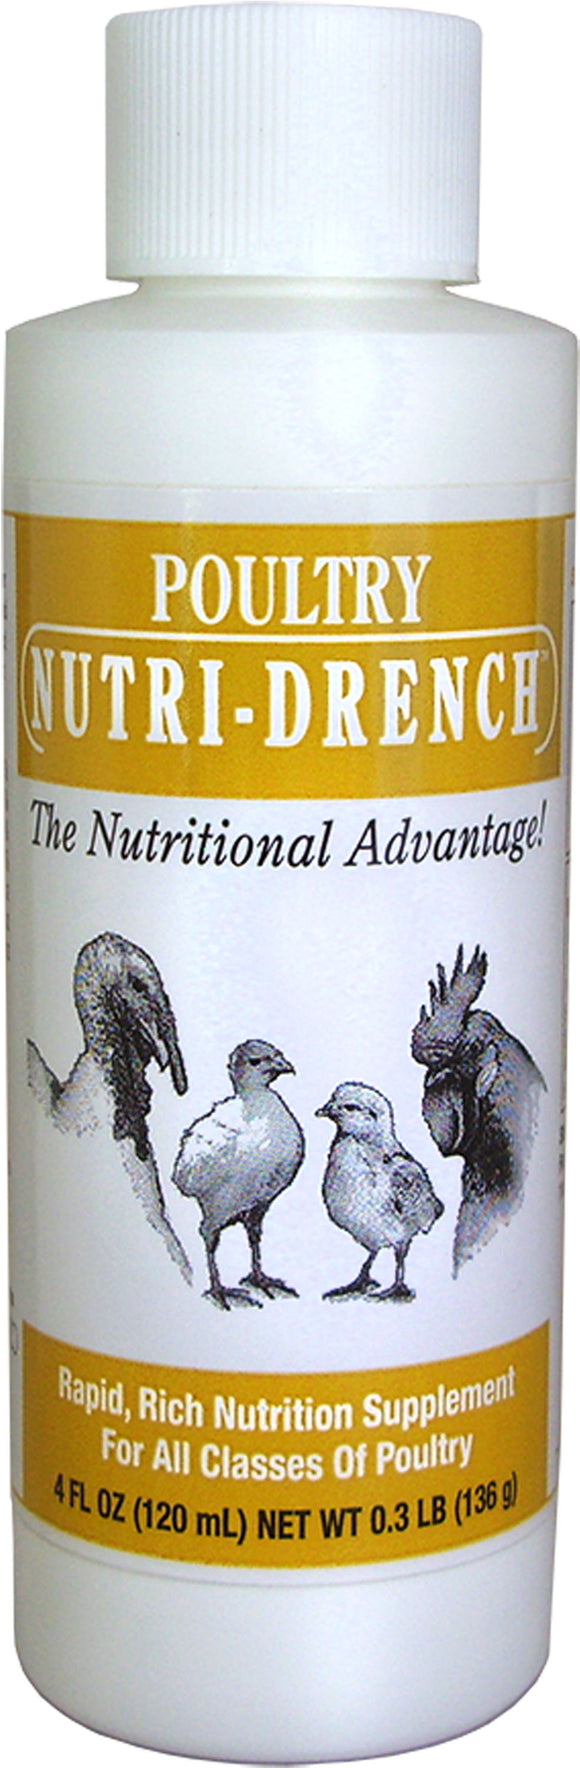 Bovidr Laboratories - Nutri-drench Poultry Solution